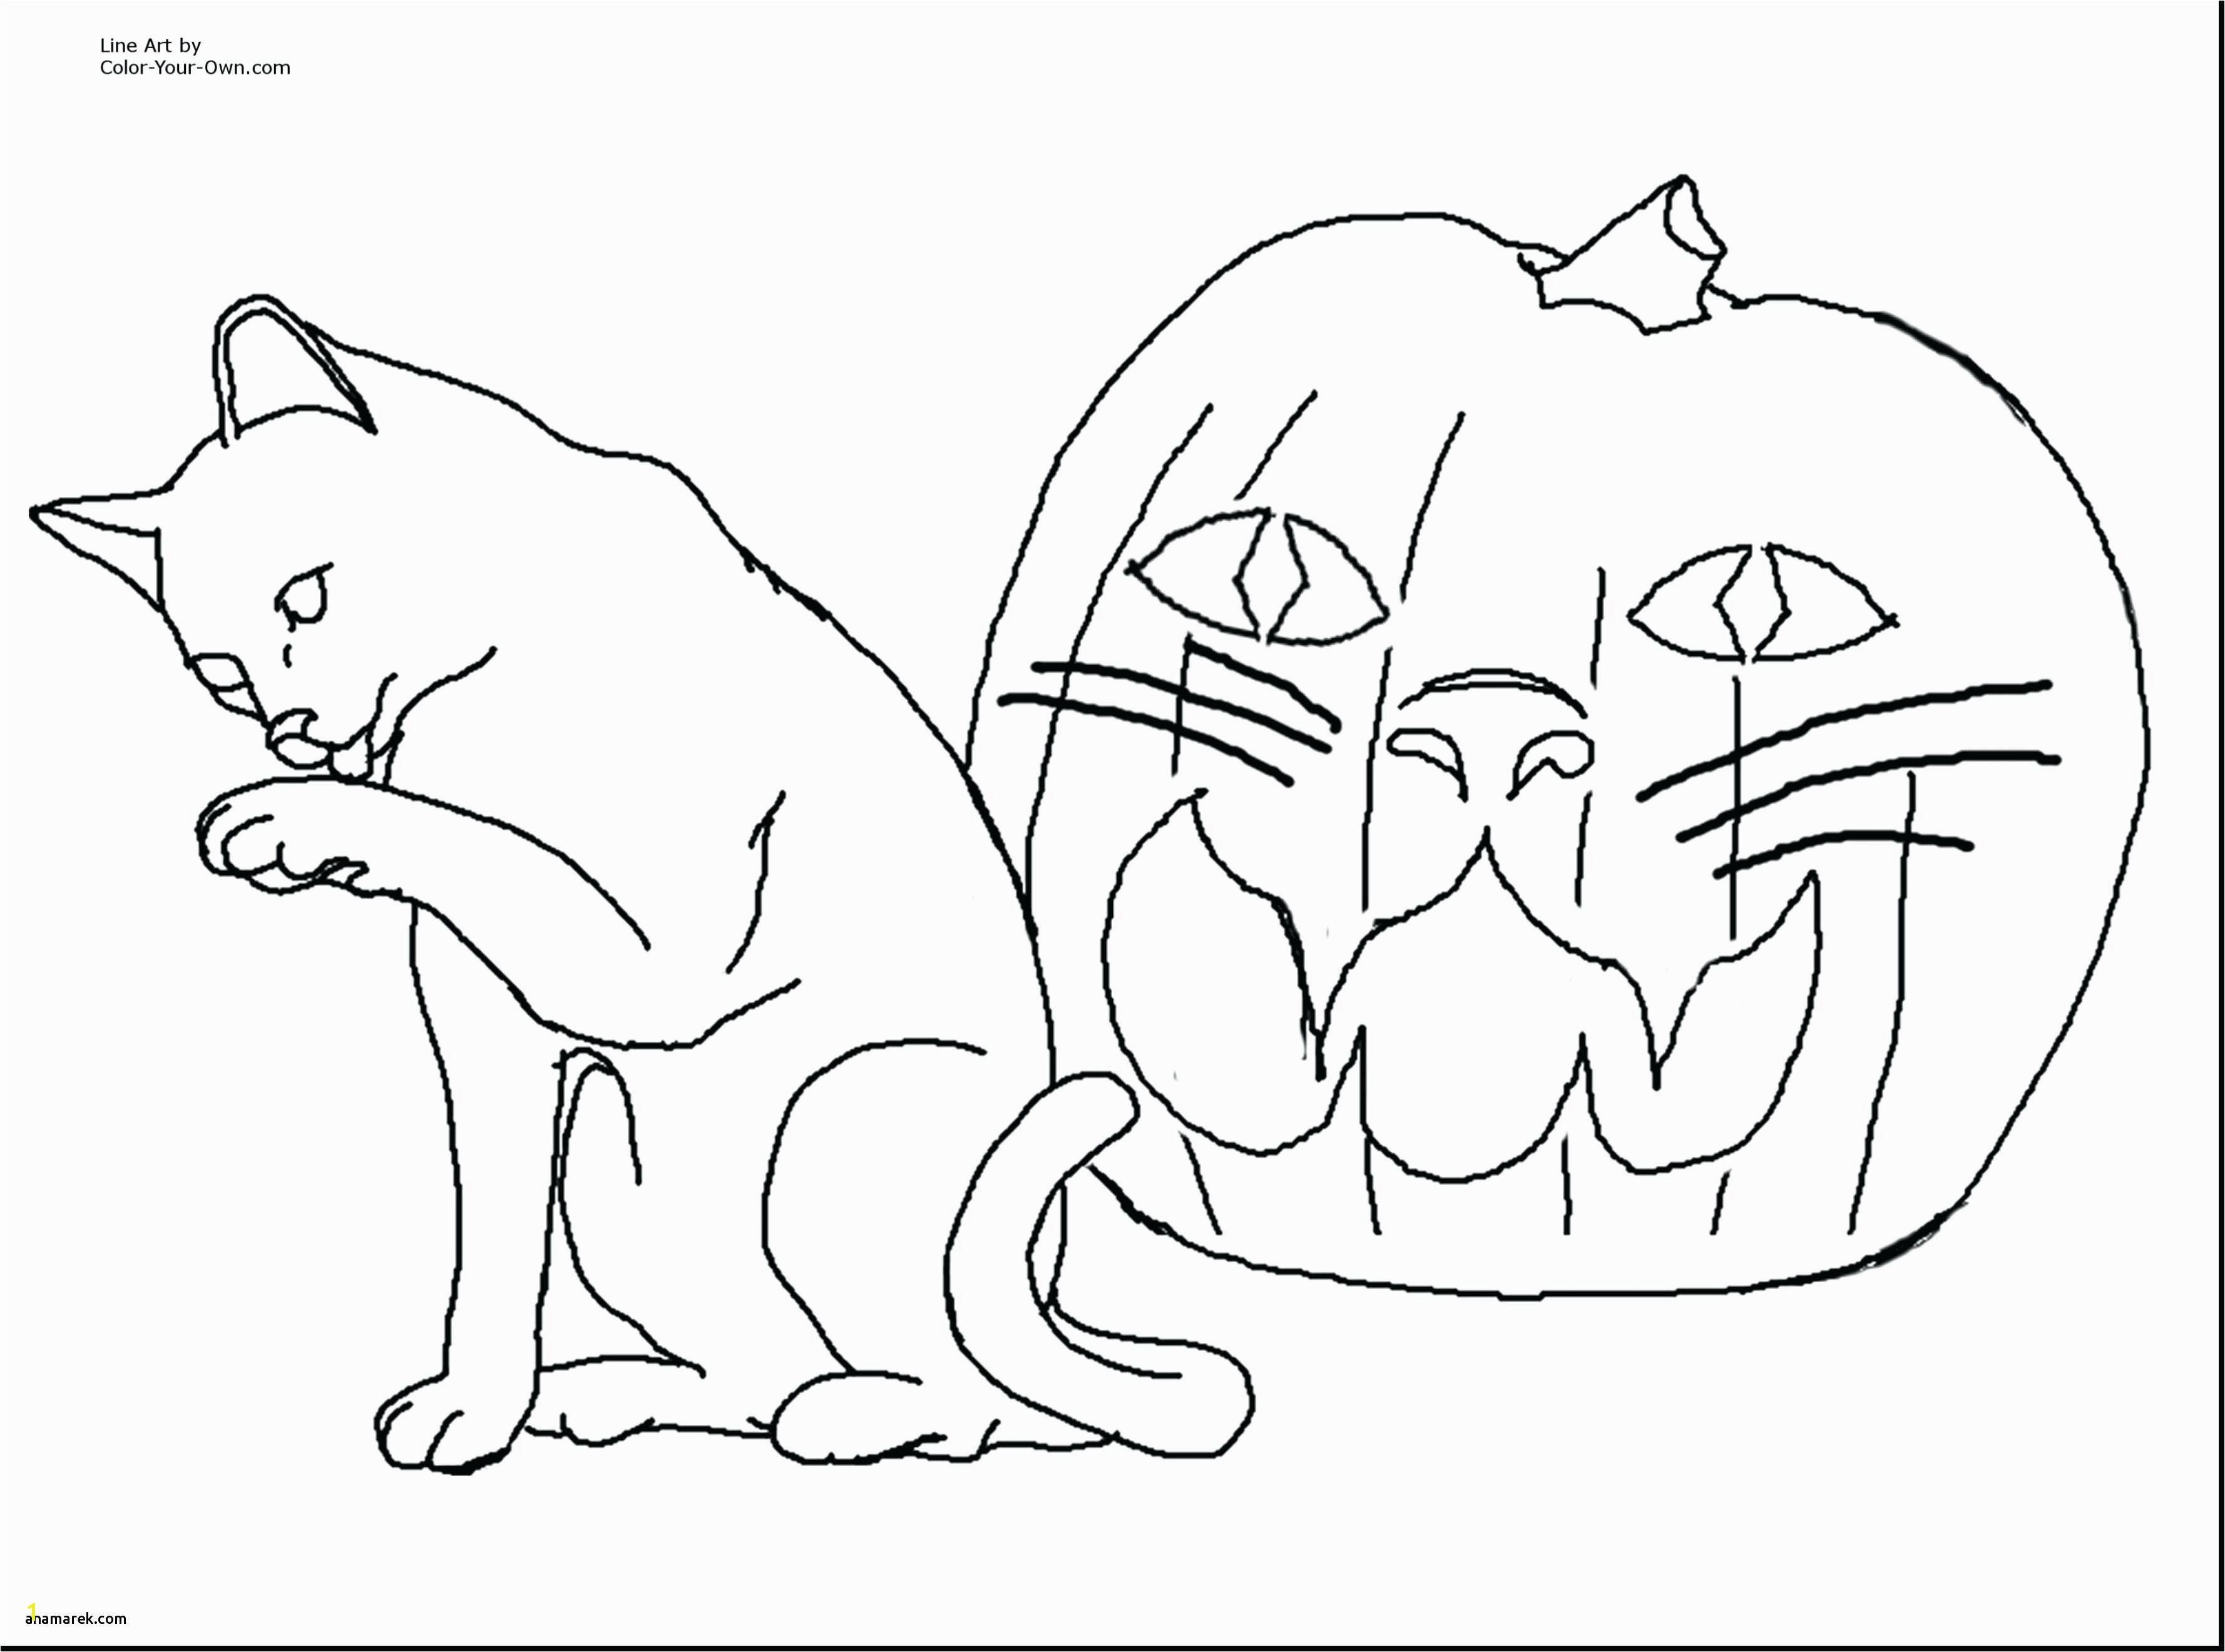 Printable Kitty Coloring Pages Unique Cat Printable Coloring Pages Unique Cool Od Dog Coloring Pages Free